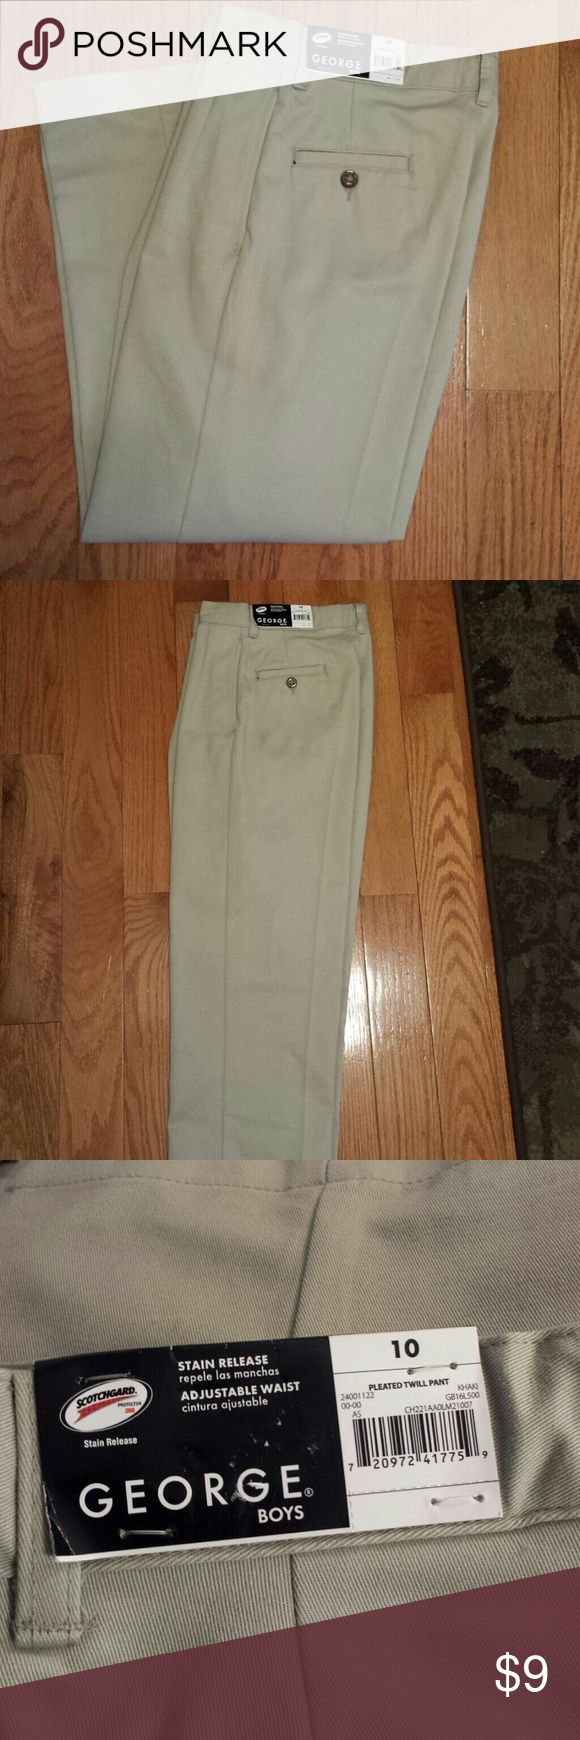 NWT Boys Khaki Pants Size 10 BRAND NEW Boys Khaki Pants Size 10; Adjustable waist; Scotchgard Stain Release; VERY NICE!! George Bottoms Casual